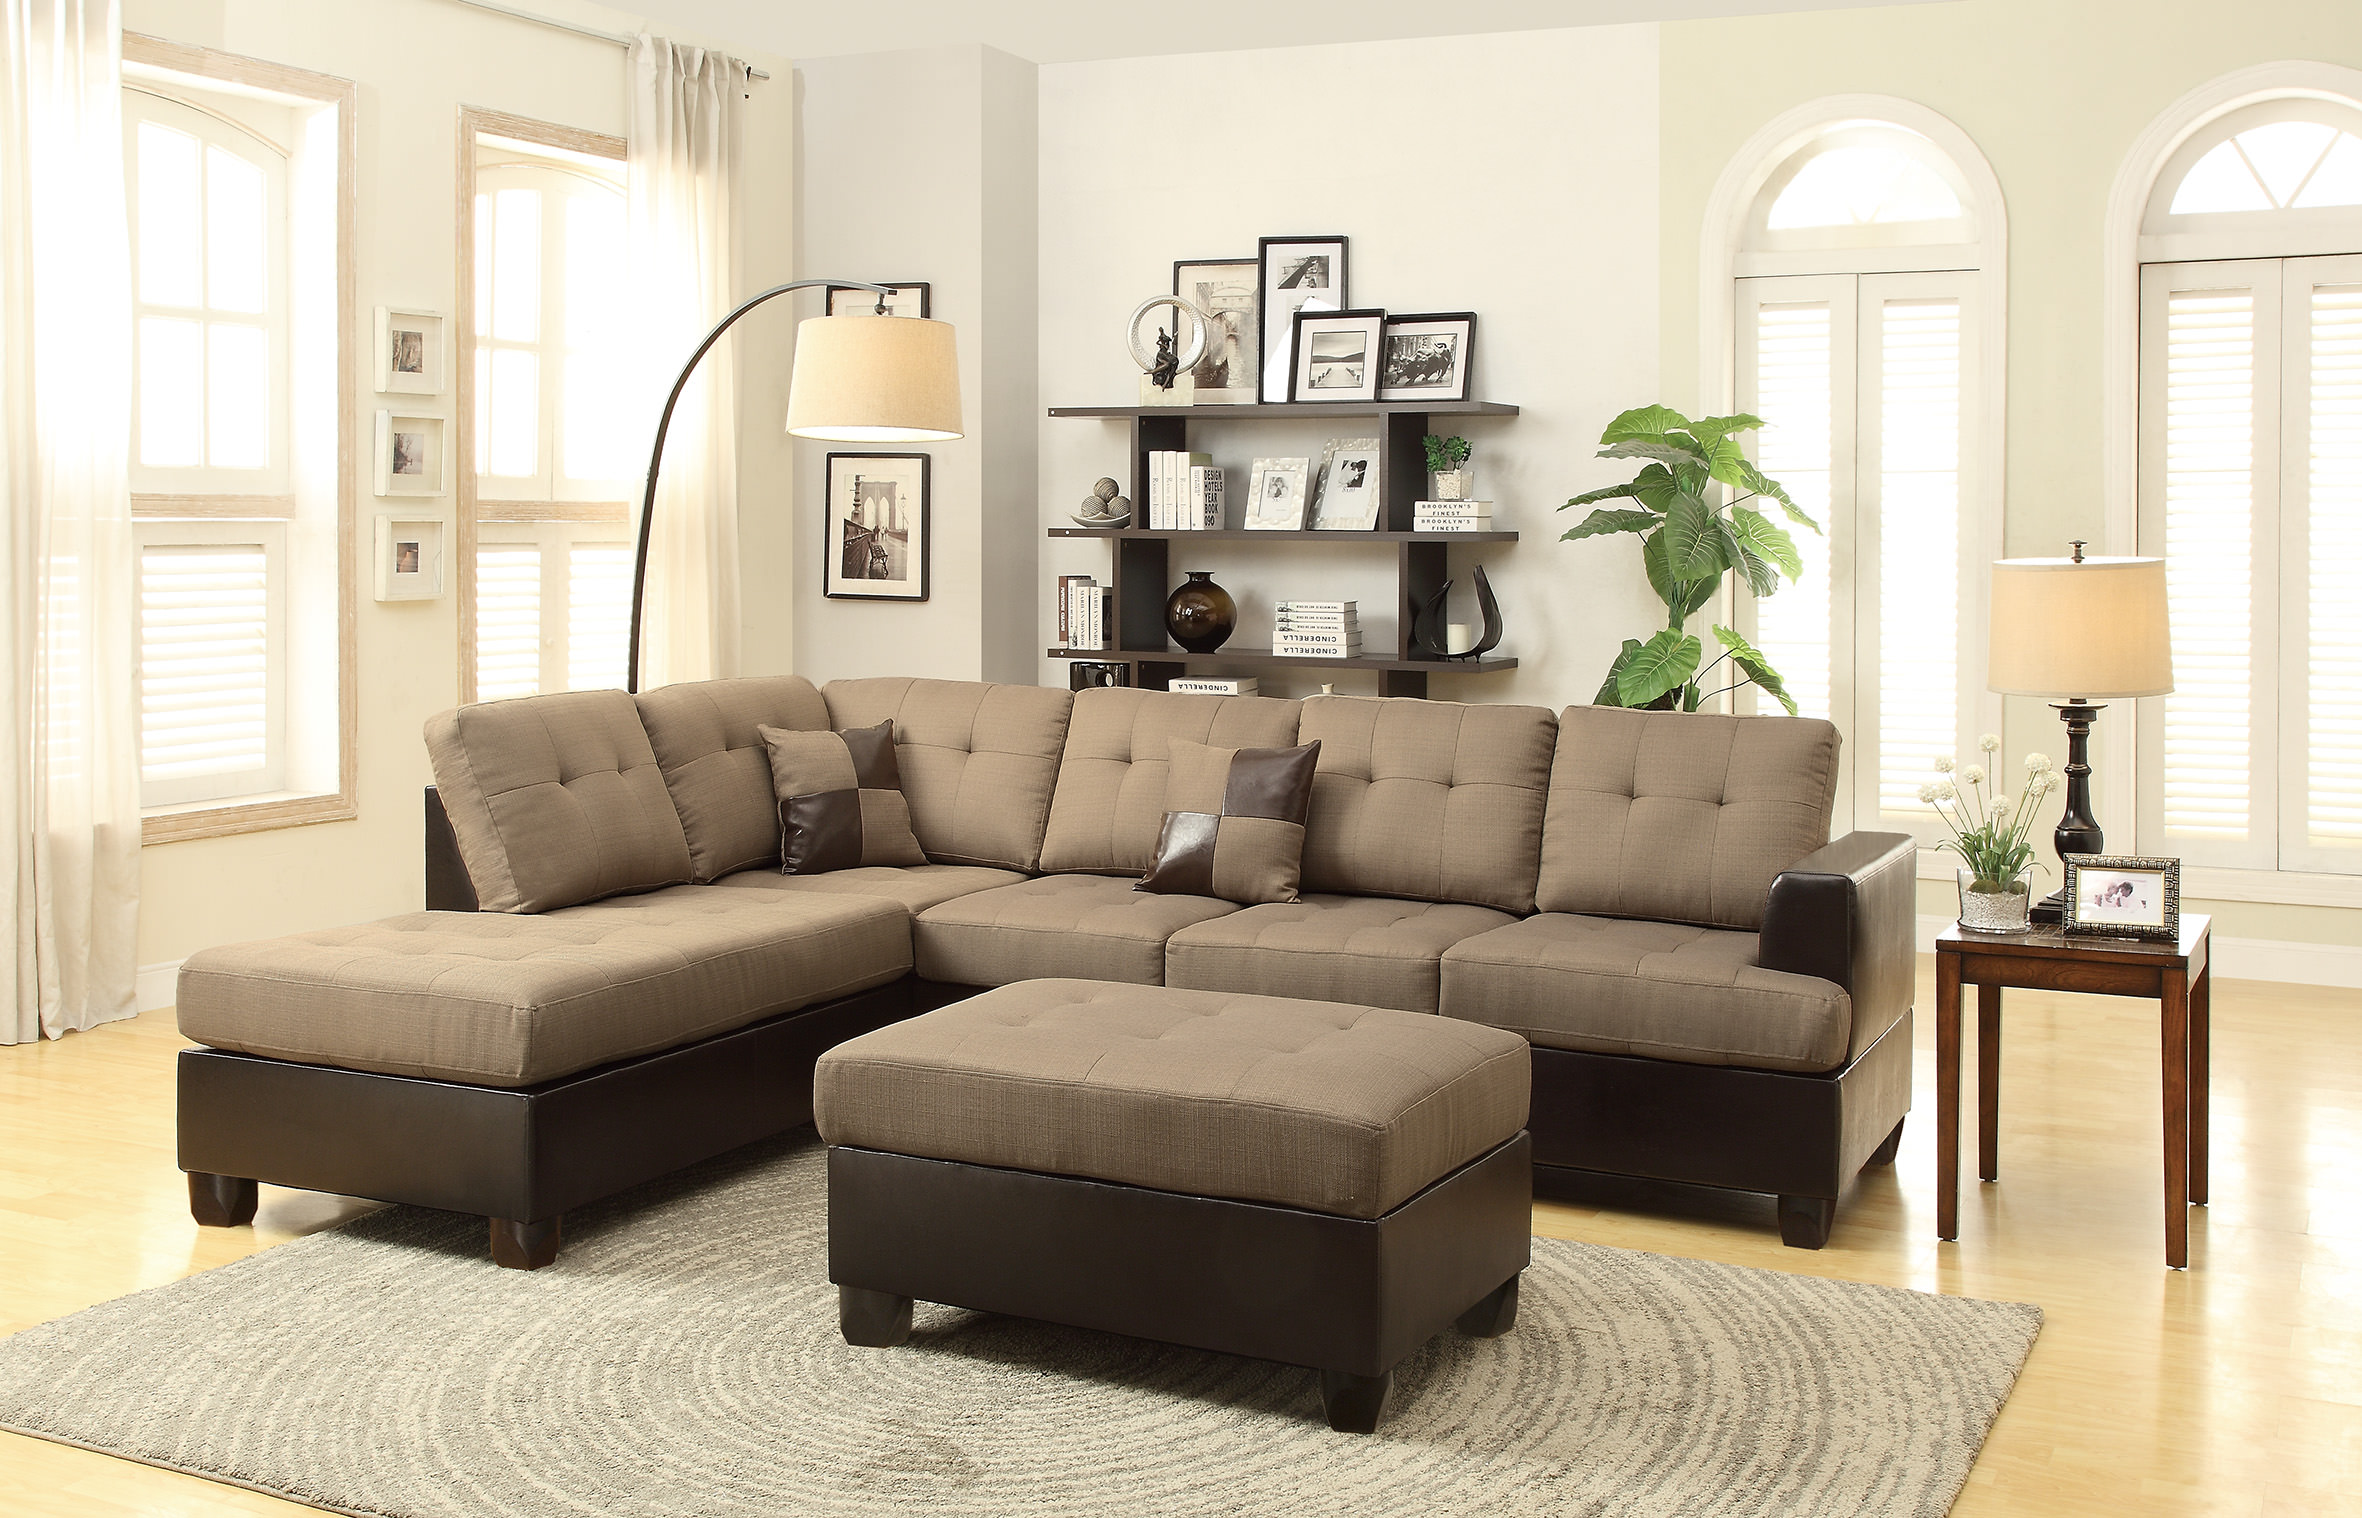 Amazing F7603 Tan 2 Pcs Sectional Sofa Set By Poundex Inzonedesignstudio Interior Chair Design Inzonedesignstudiocom